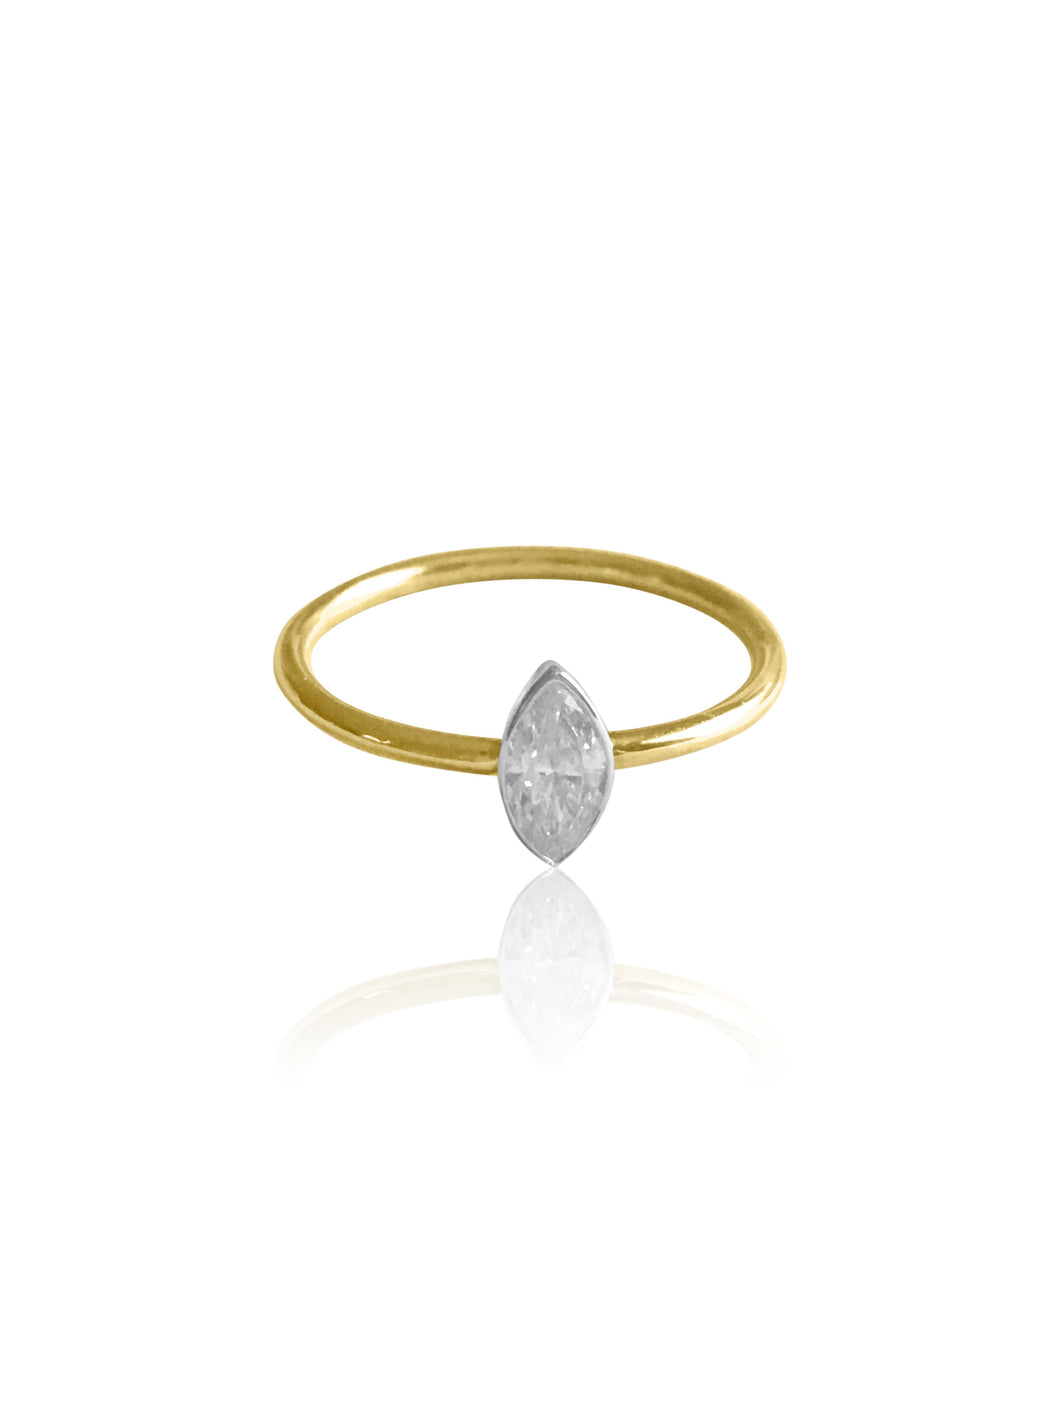 14k Gold Bezel Marquise Diamond Ring